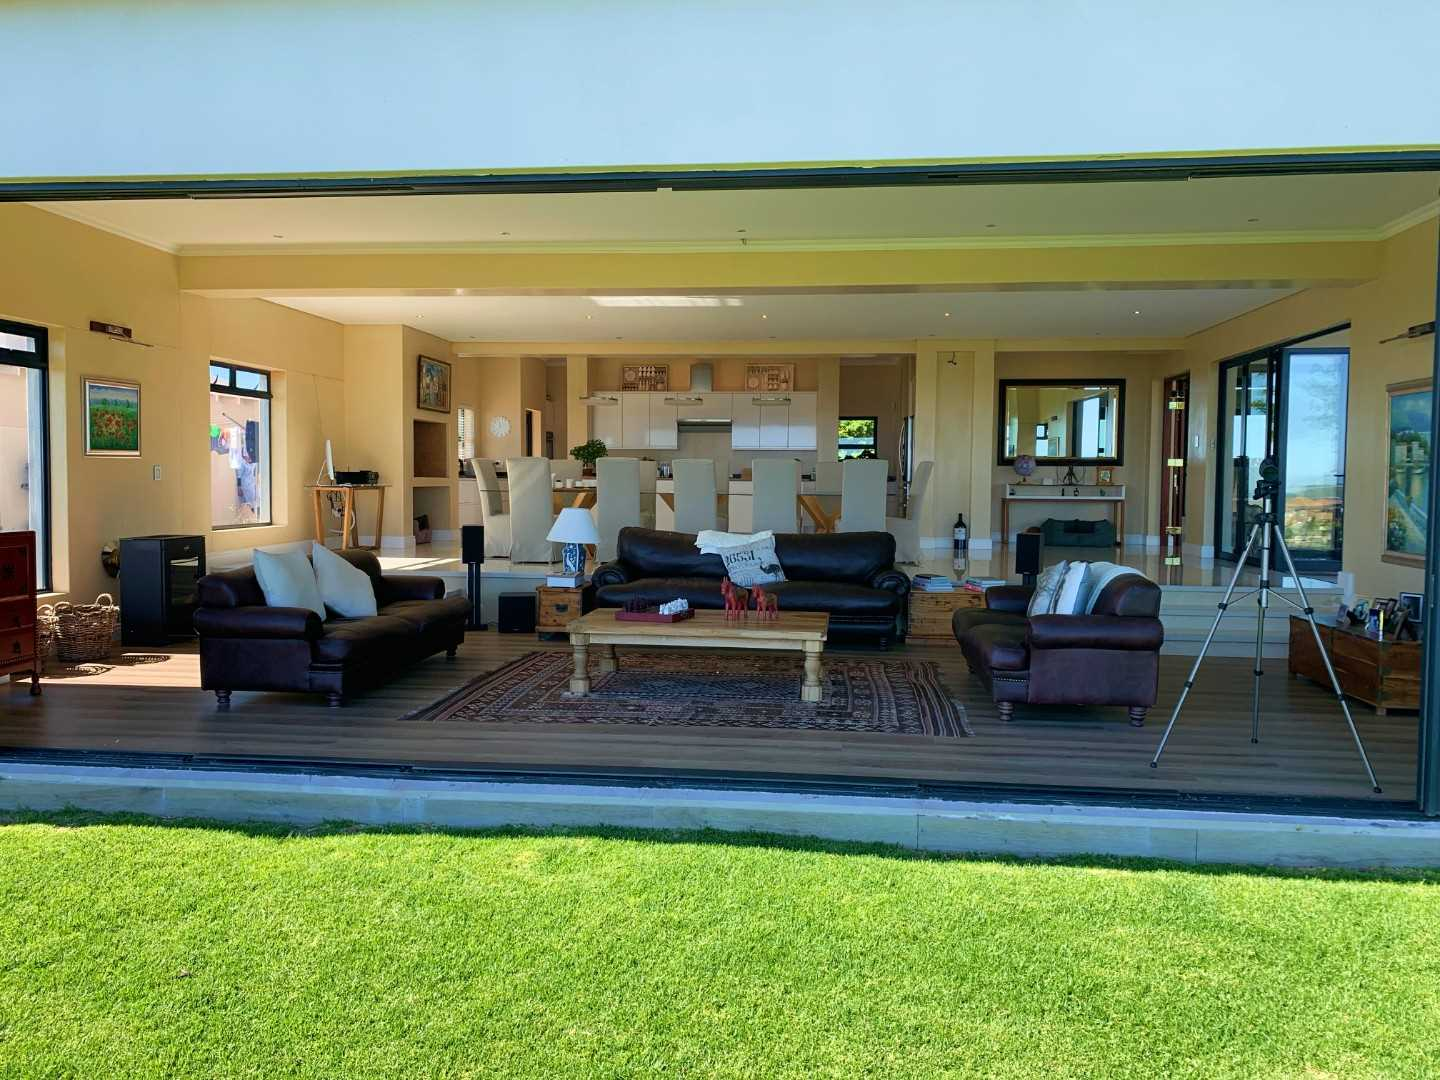 Natural  and effortless indoor to outdoor flow for those perfect Langebaan days